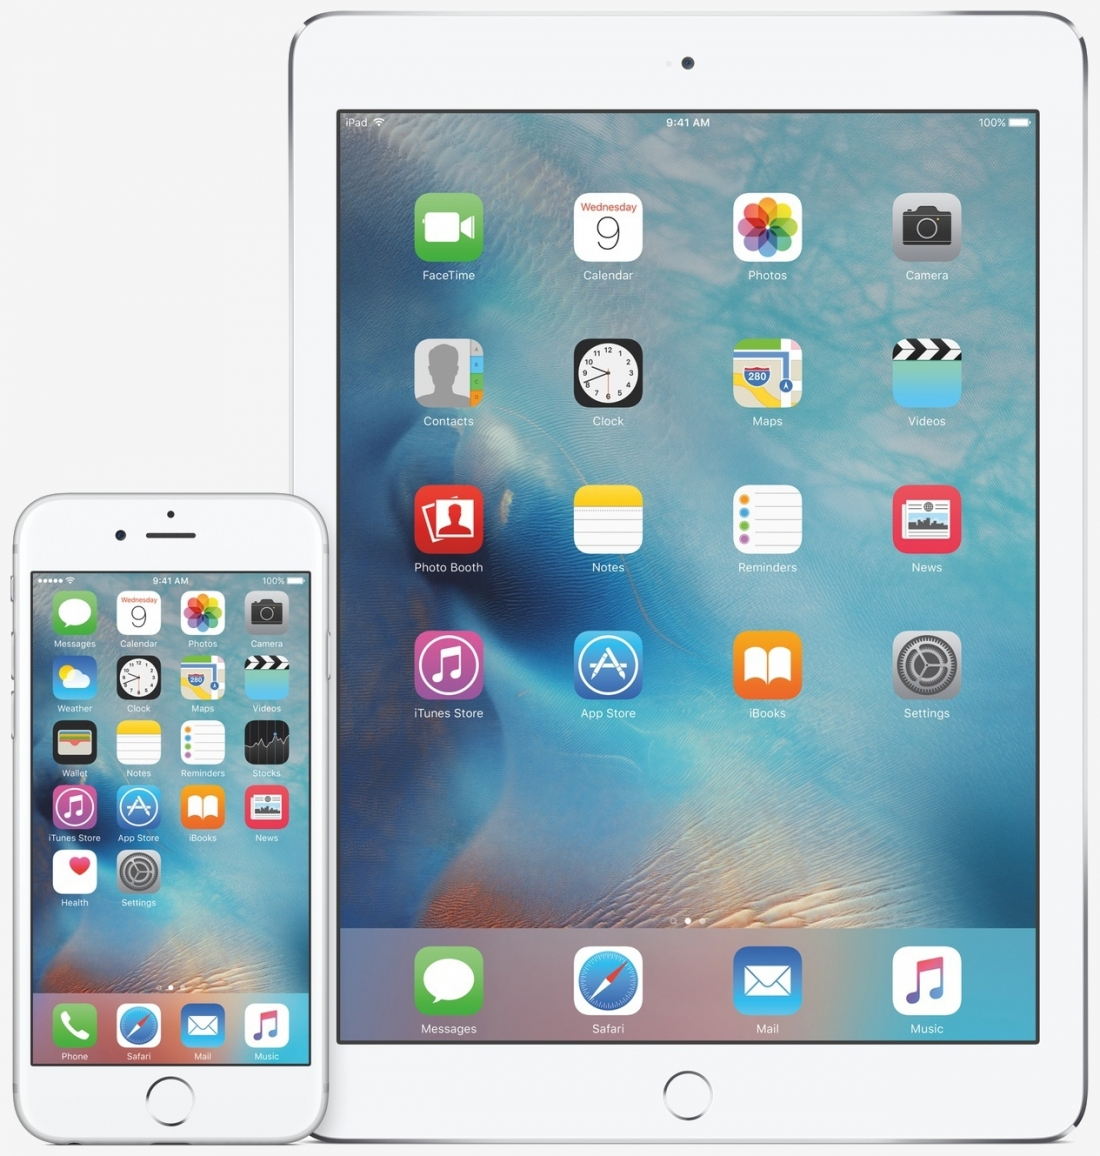 apple, iphone, ipad, android, operating system, mobile os, multitasking, ios 9, iphone 6s, iphone 6s plus